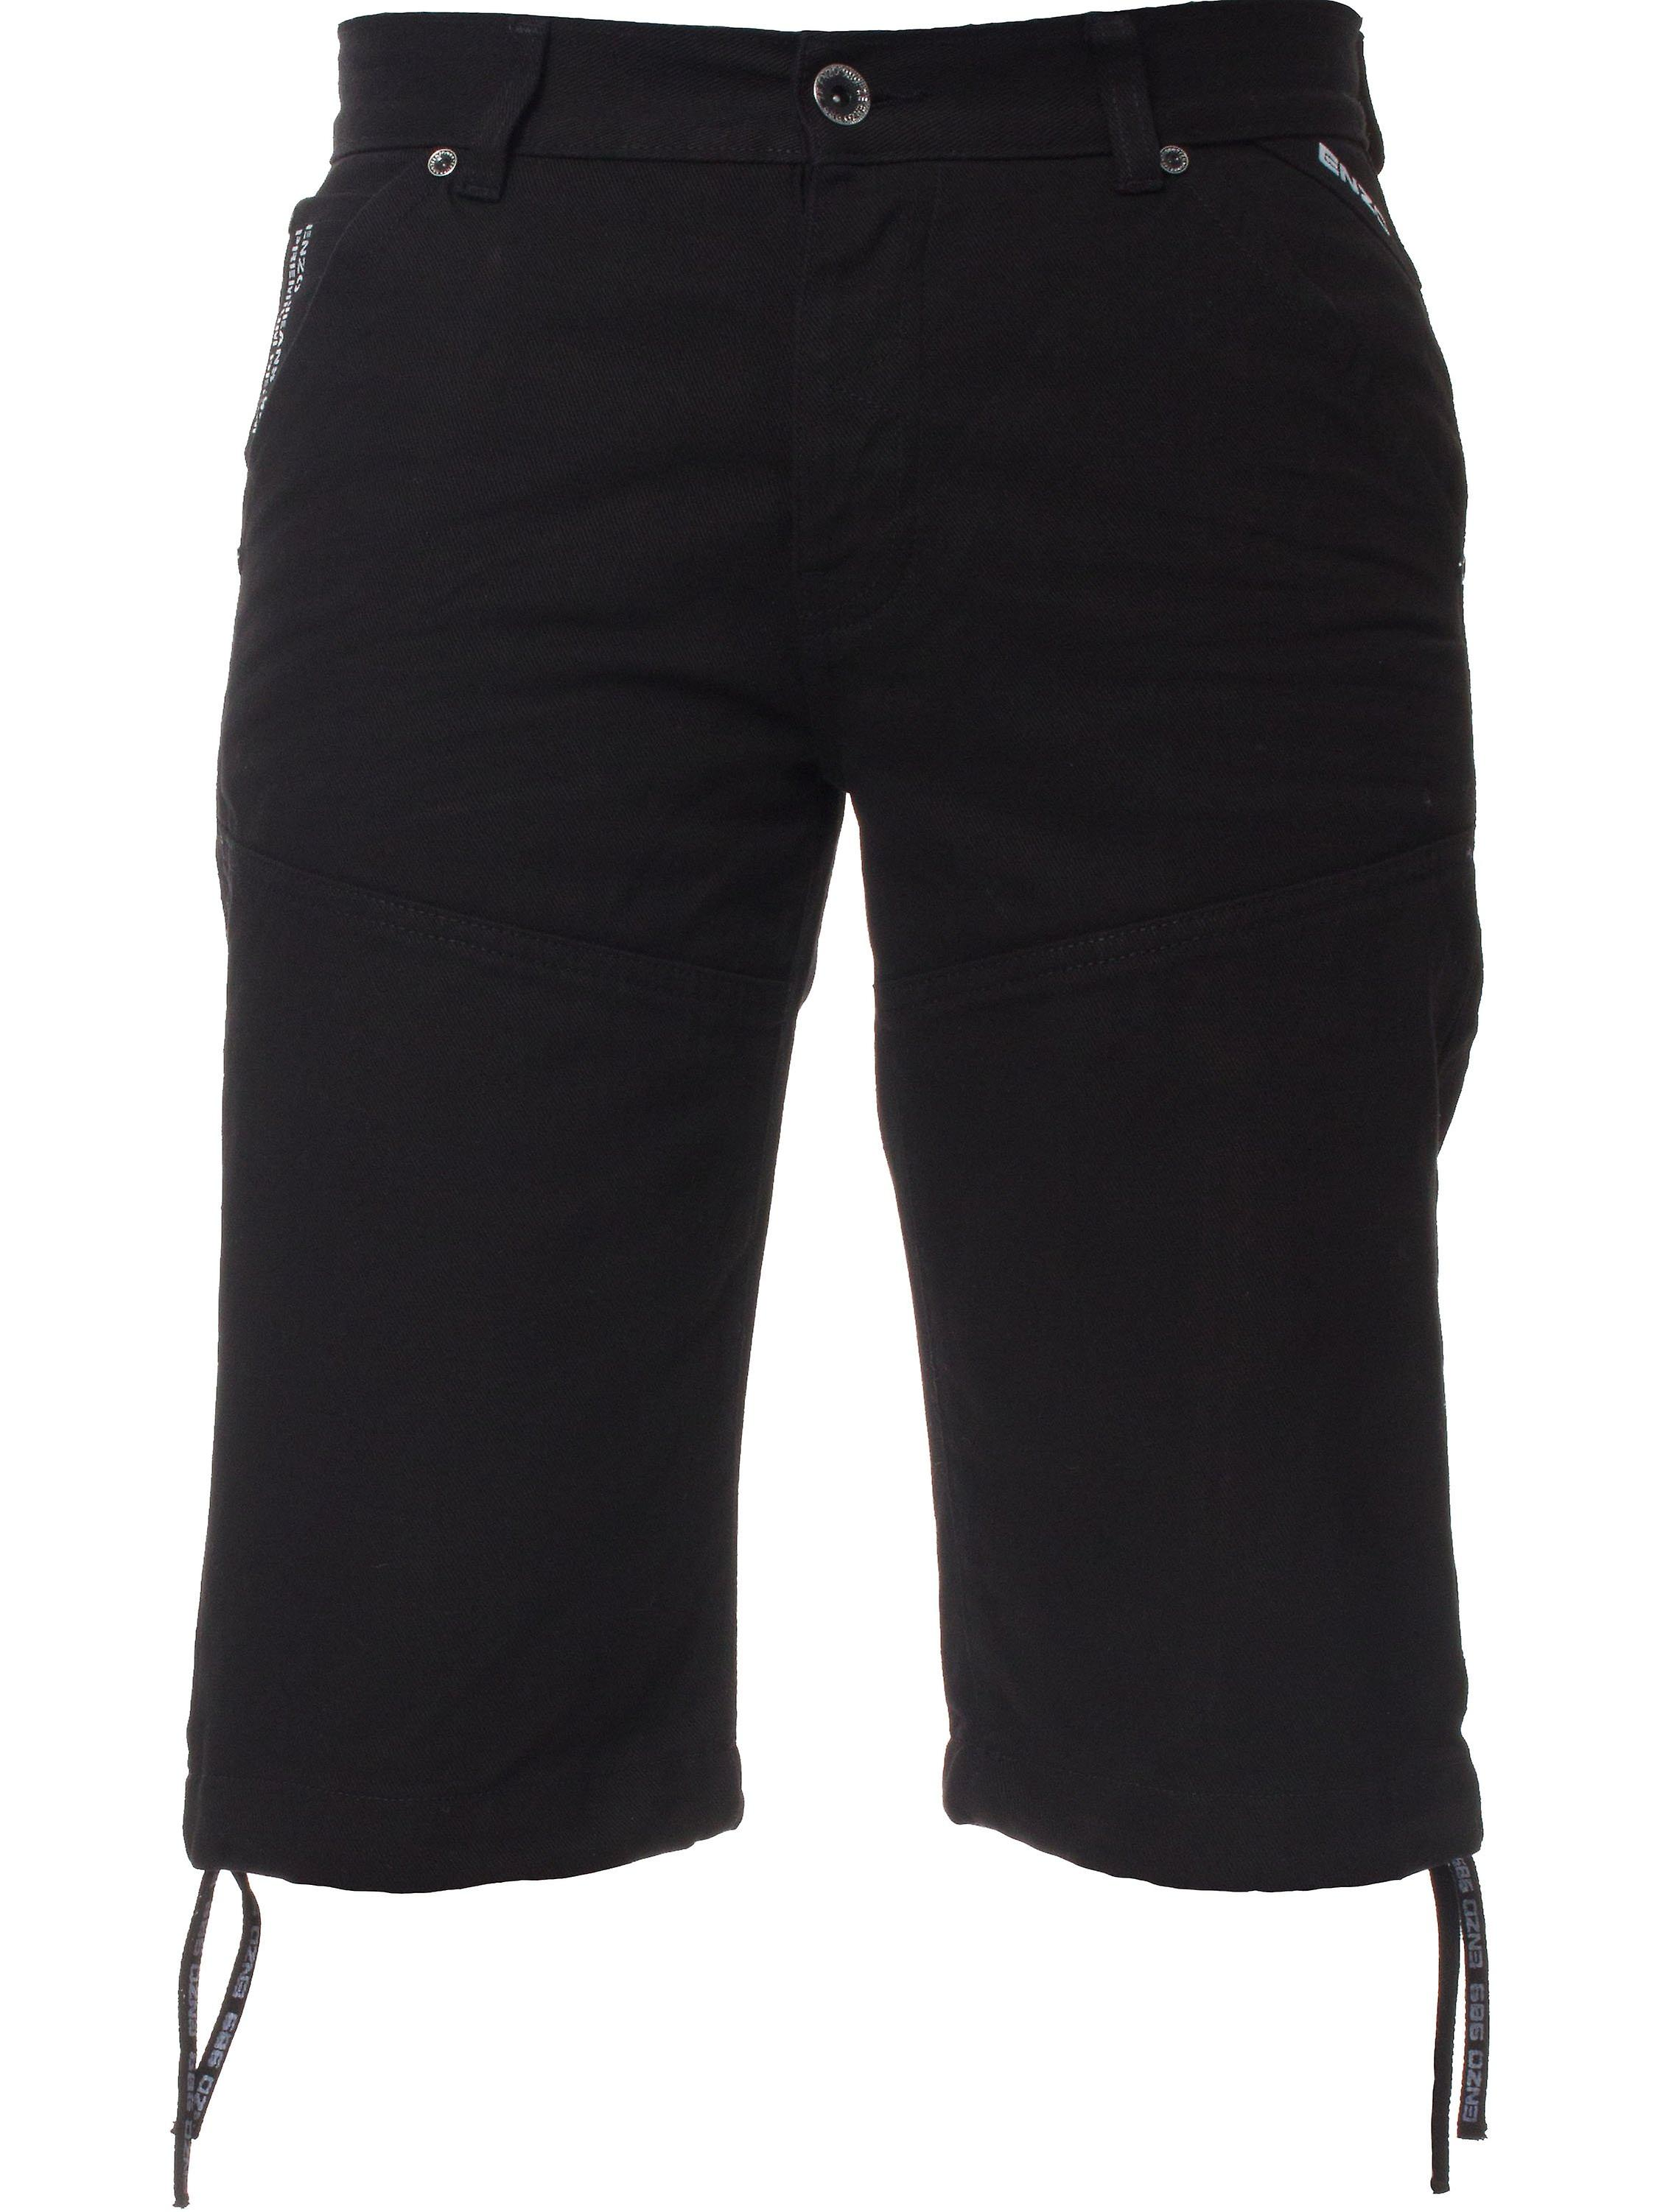 Mens Black Denim Shorts | Enzo Designer Menswear